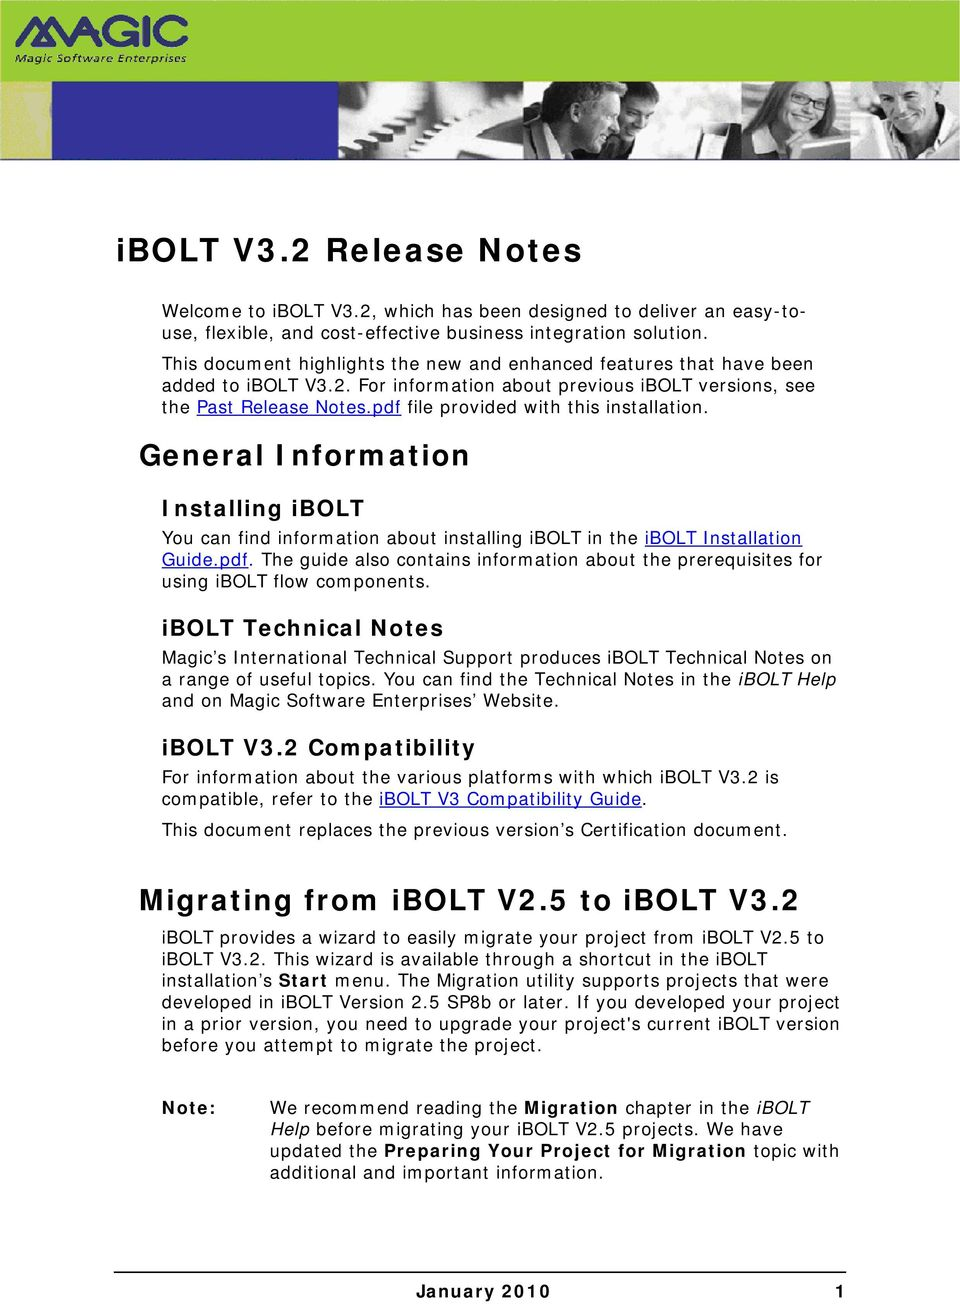 pdf file provided with this installation. General Information Installing ibolt You can find information about installing ibolt in the ibolt Installation Guide.pdf. The guide also contains information about the prerequisites for using ibolt flow components.